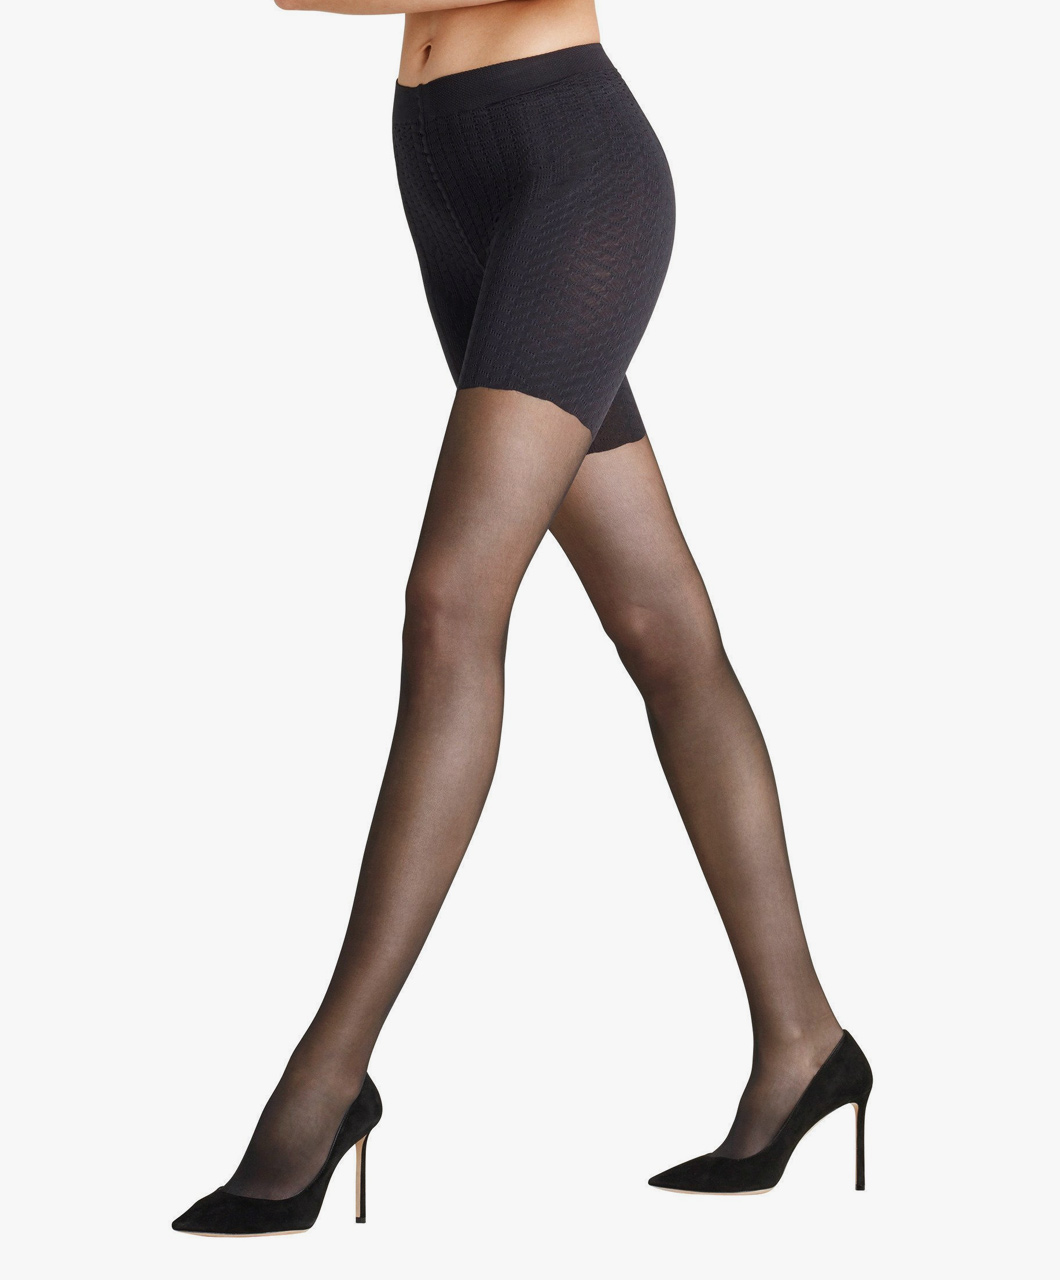 Falke Womens Cellulite Control Pants Thigh Slimmer